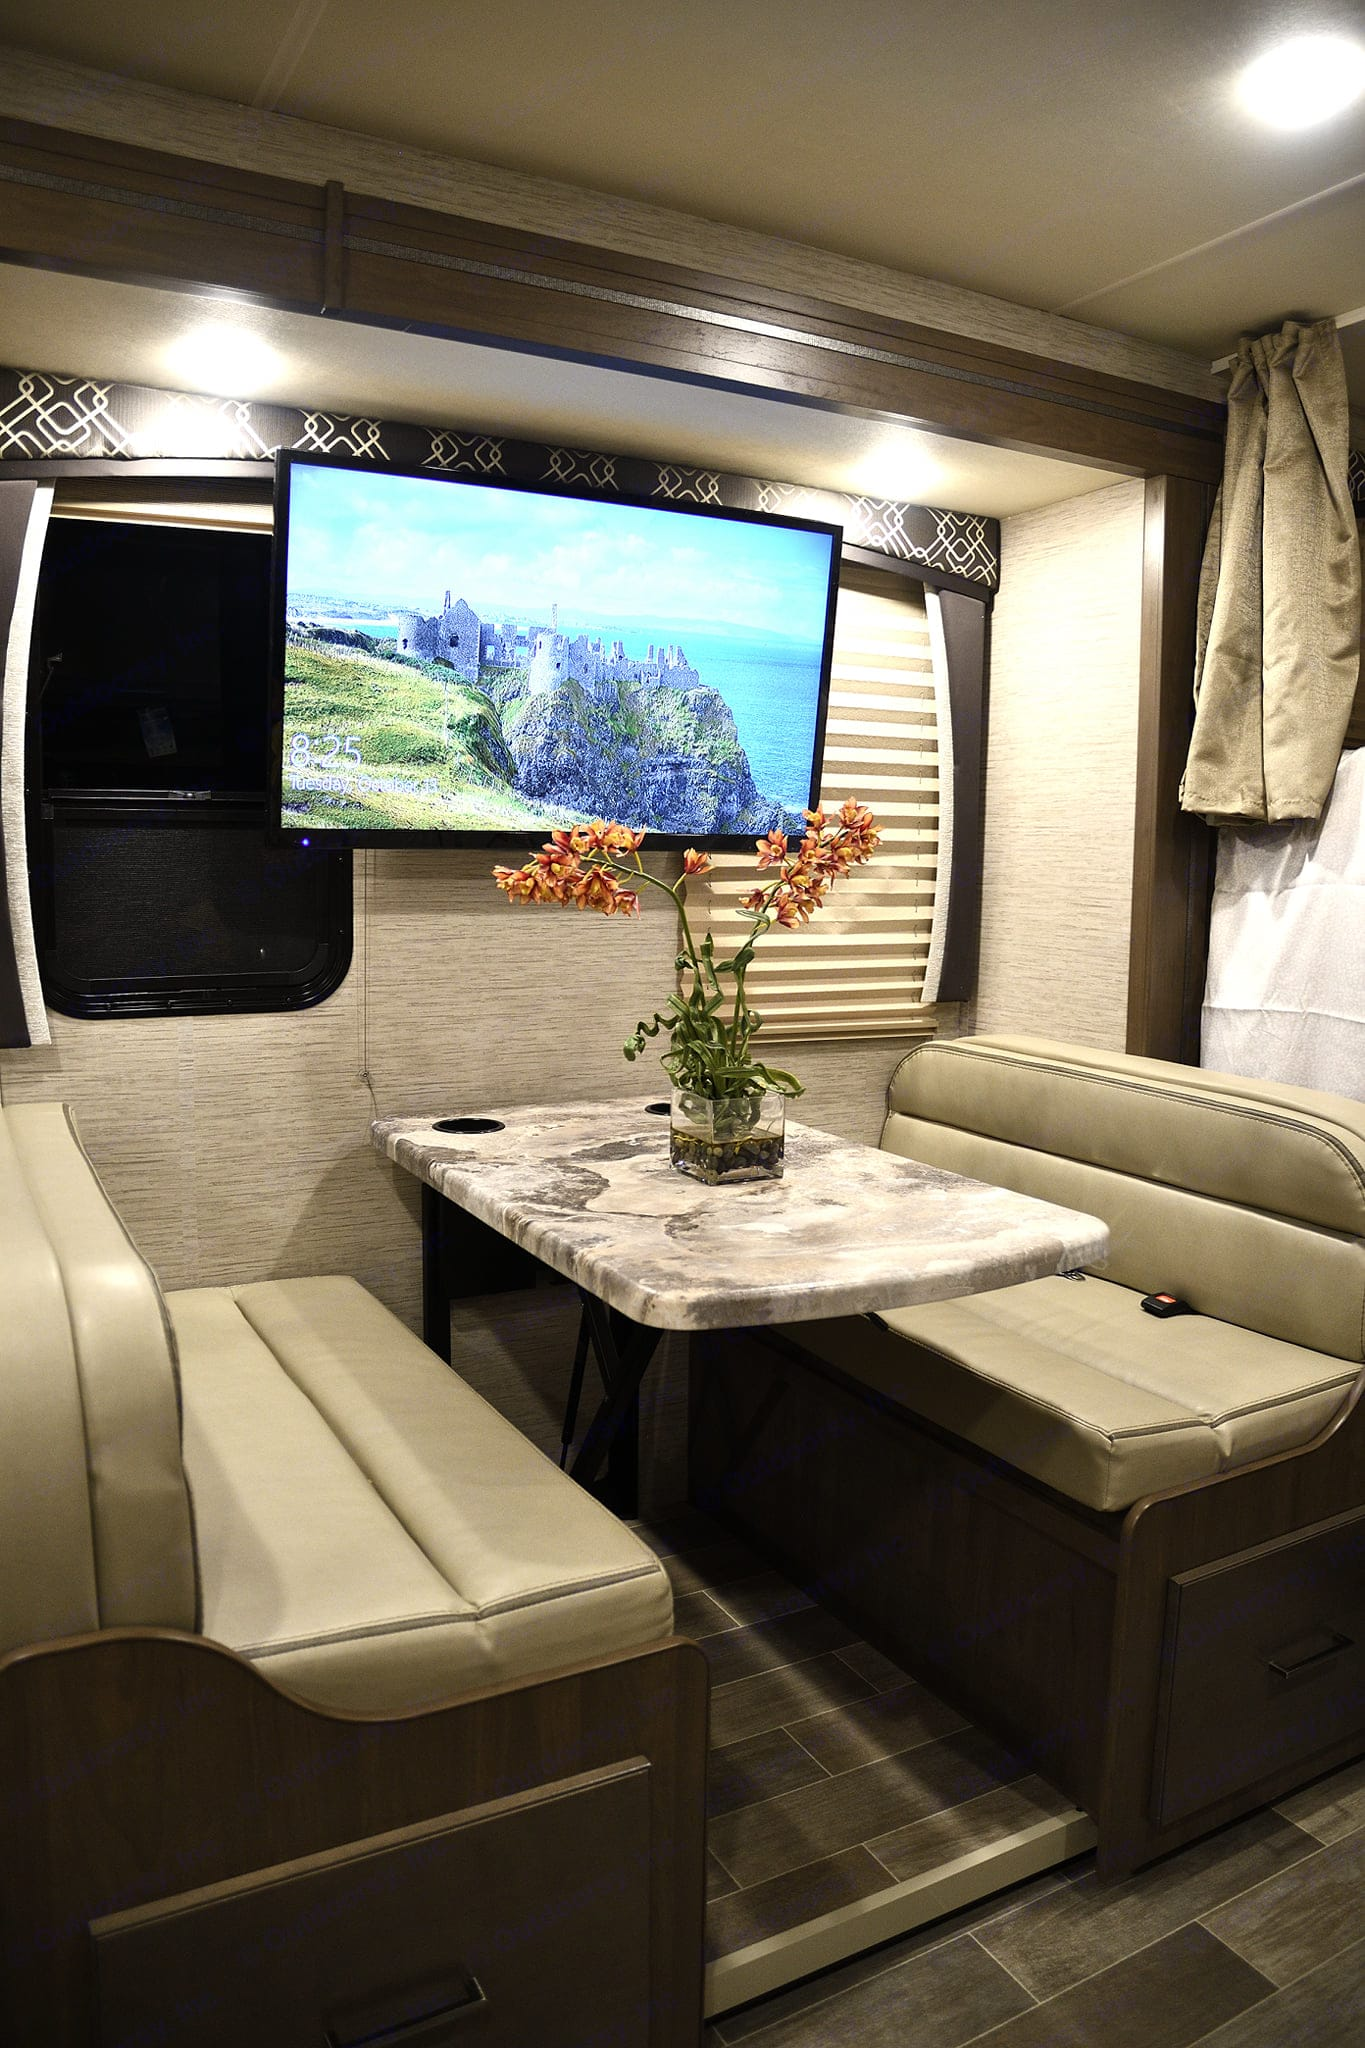 Dinette can be converted to a bed. Thor Motor Coach Chateau 2021